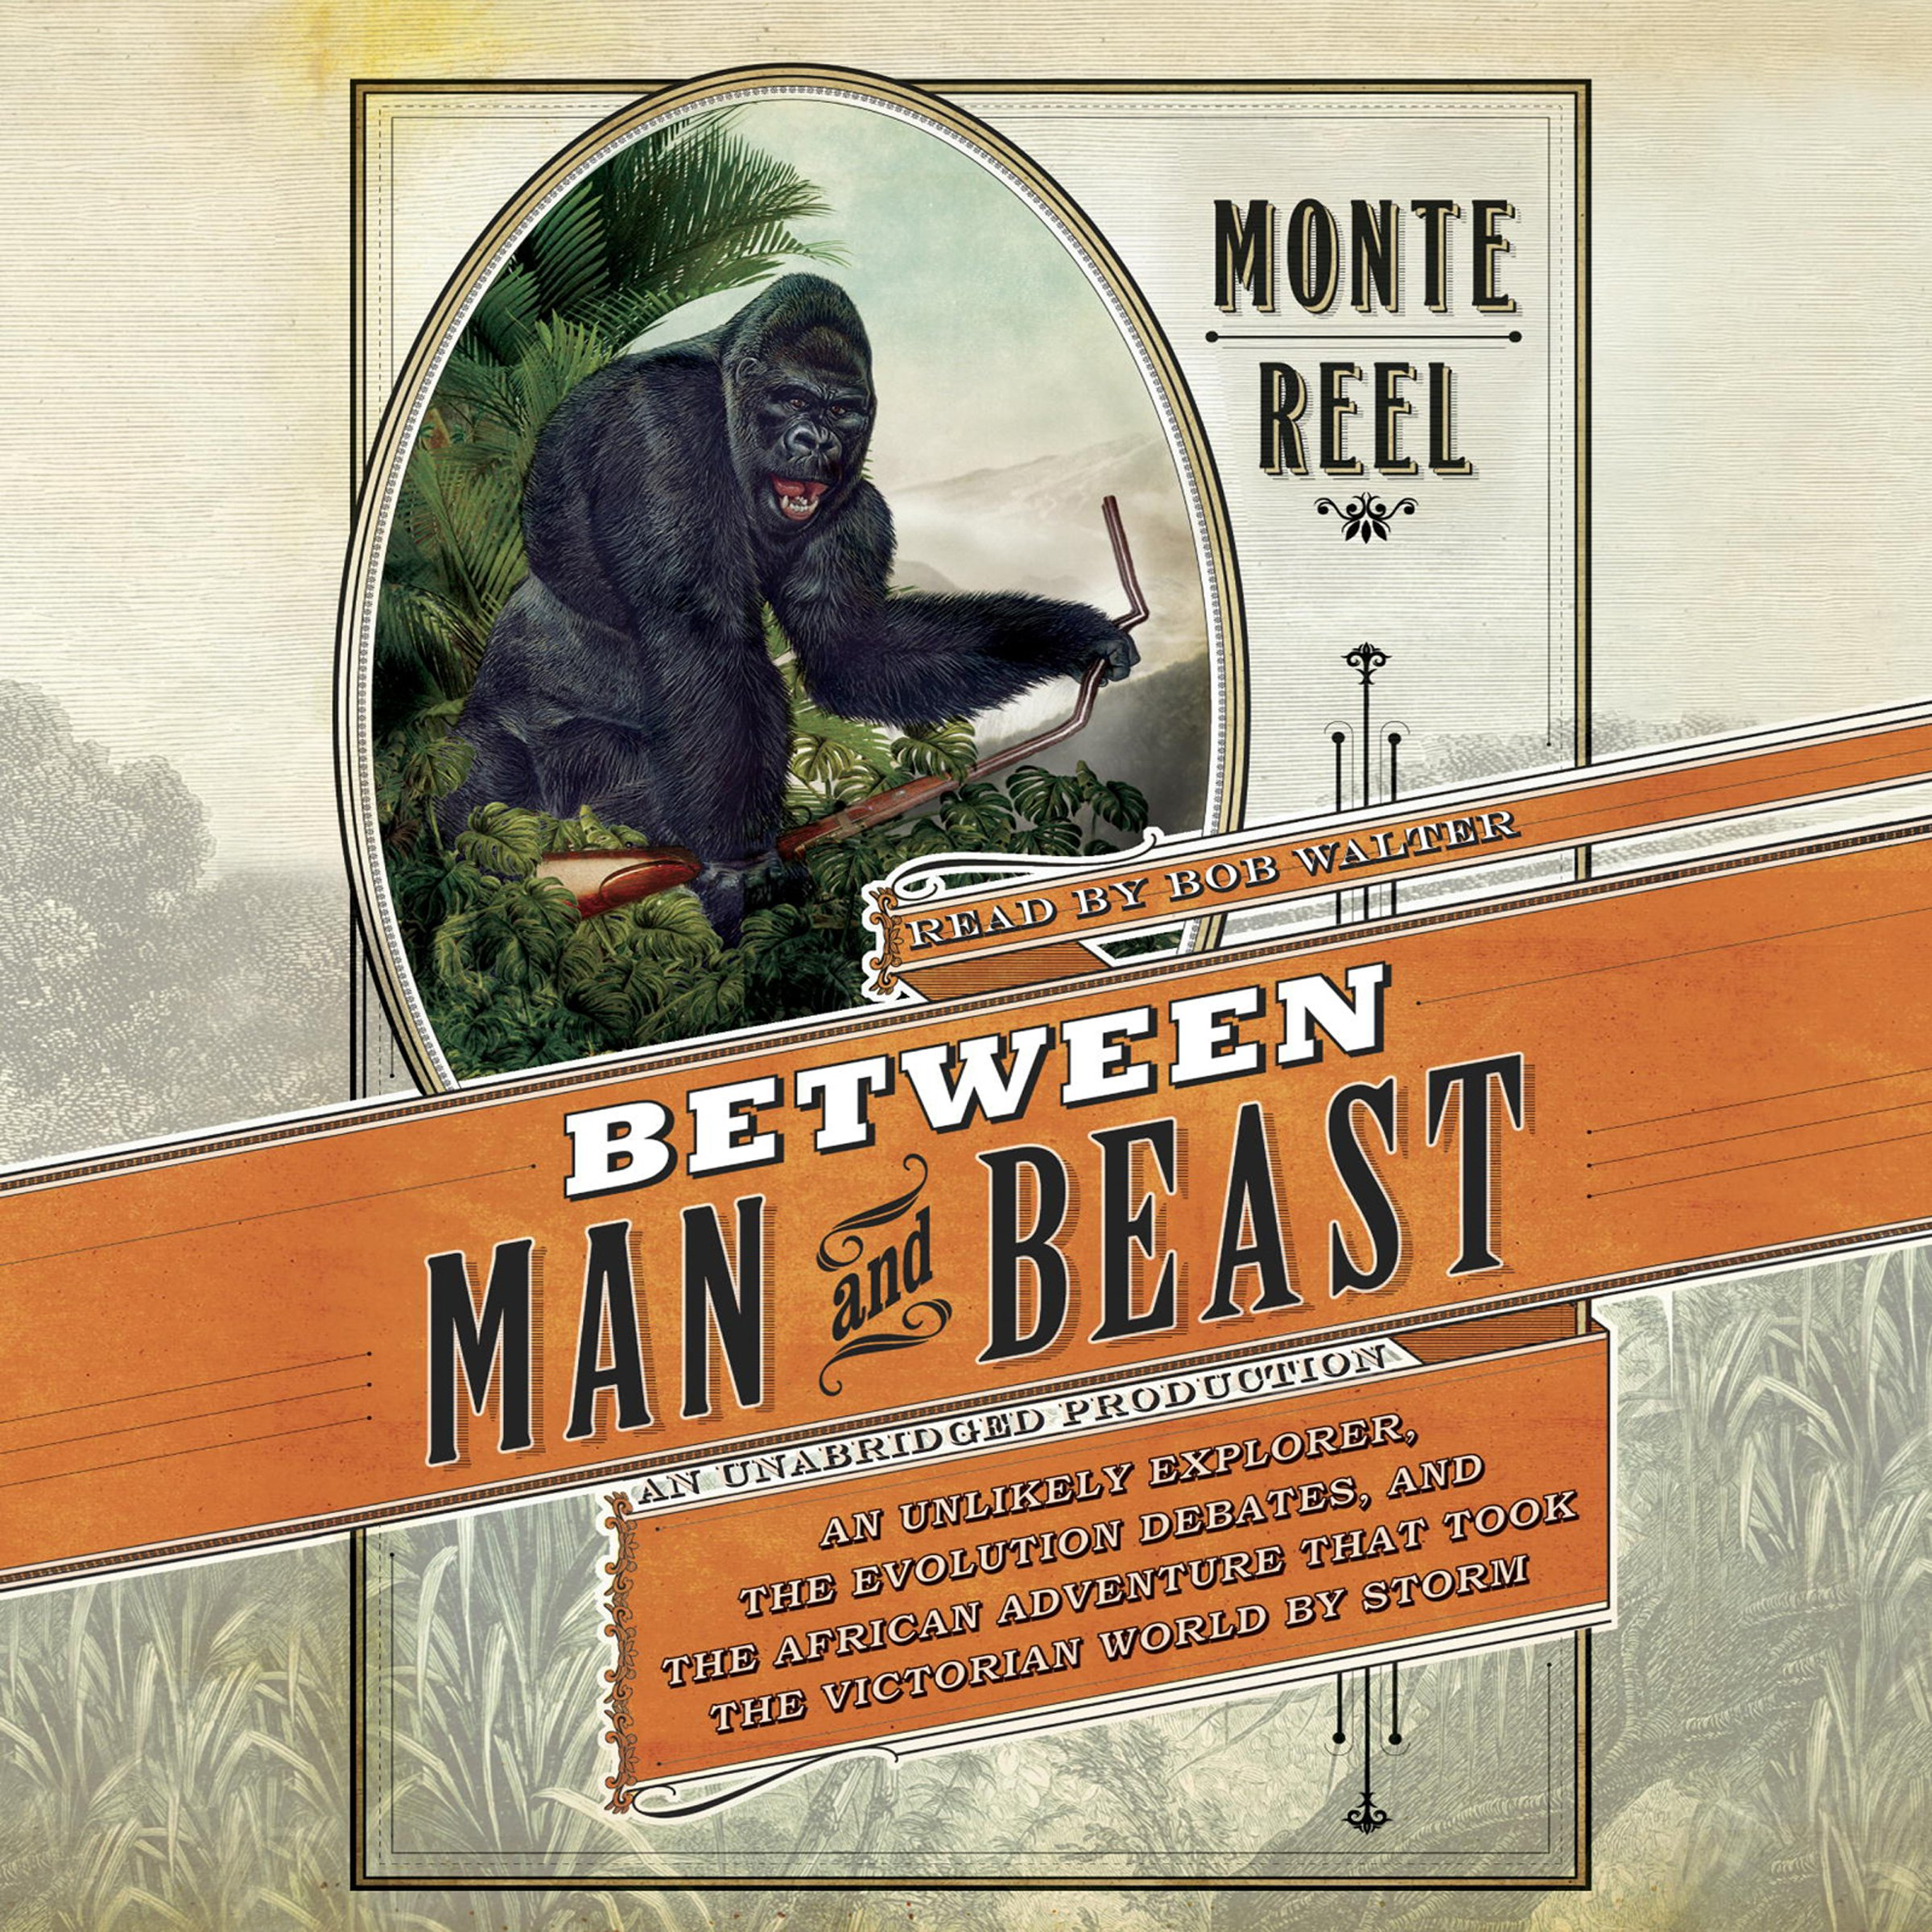 Between Man and Beast: An Unlikely Explorer, the Evolution Debates, and the African Adventure that Took the Victorian World By Storm by Random House Audio (Image #1)